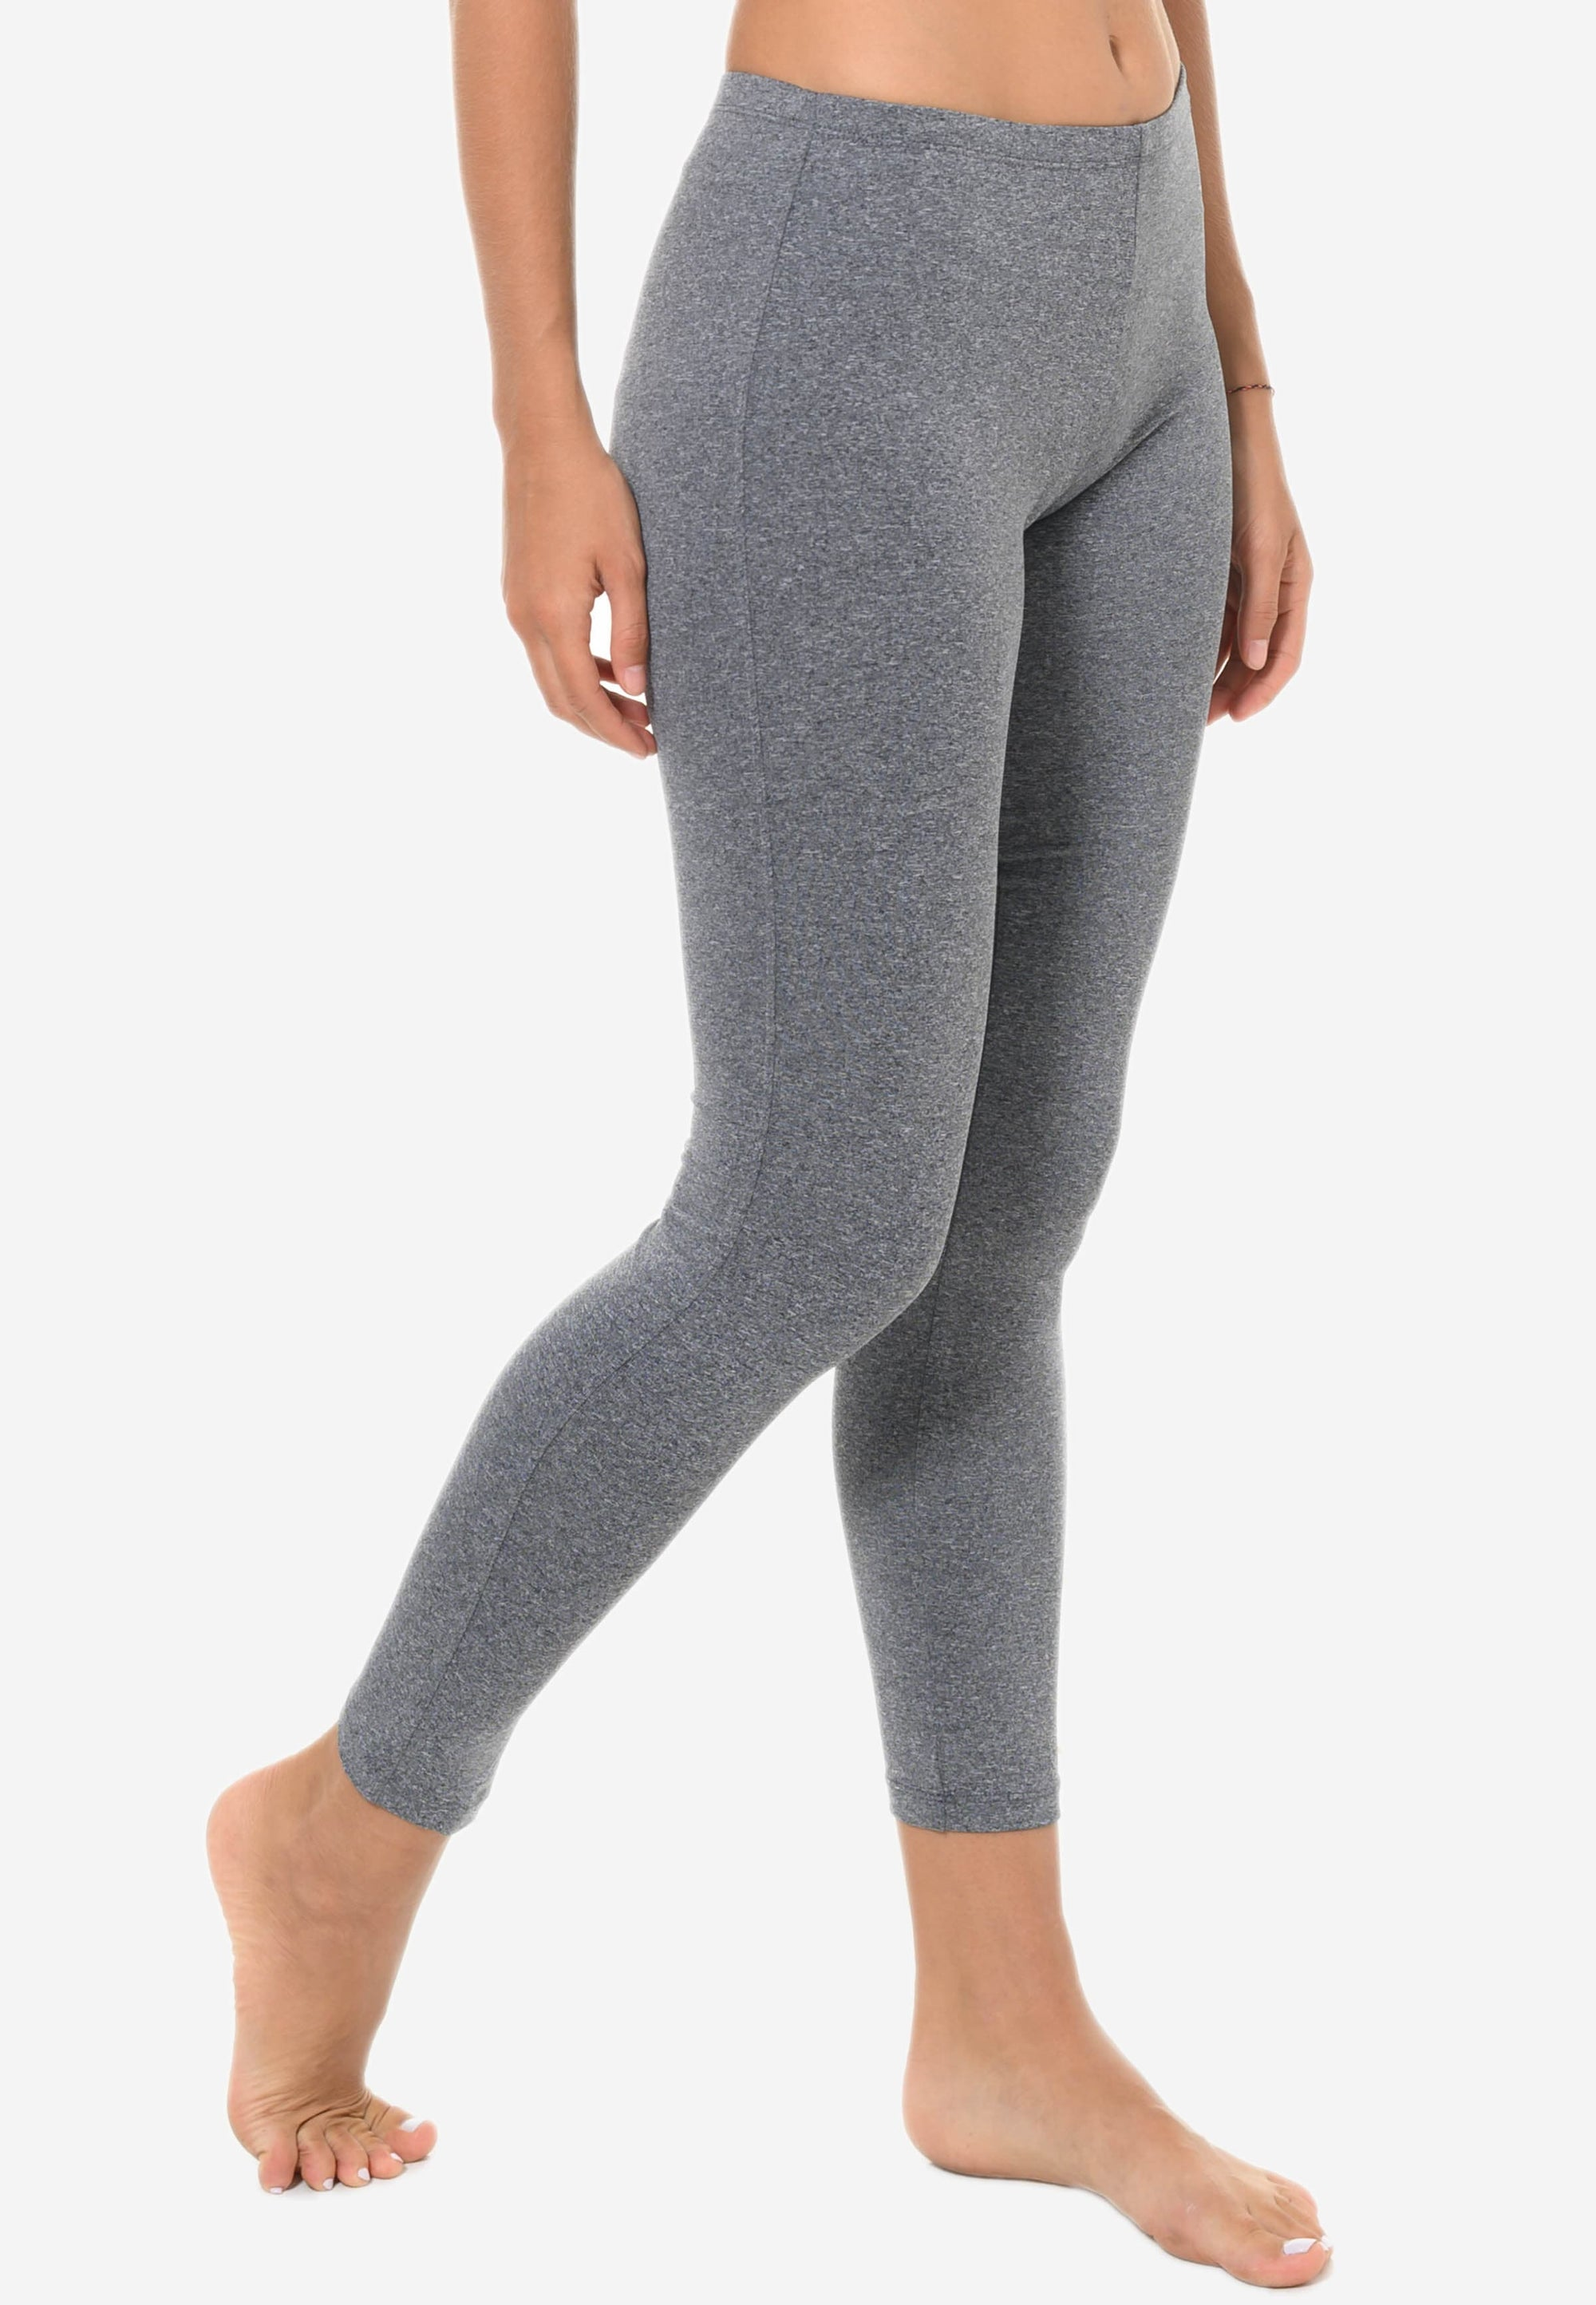 FUNFIT Basic Leggings in Heather Grey (S - XL)